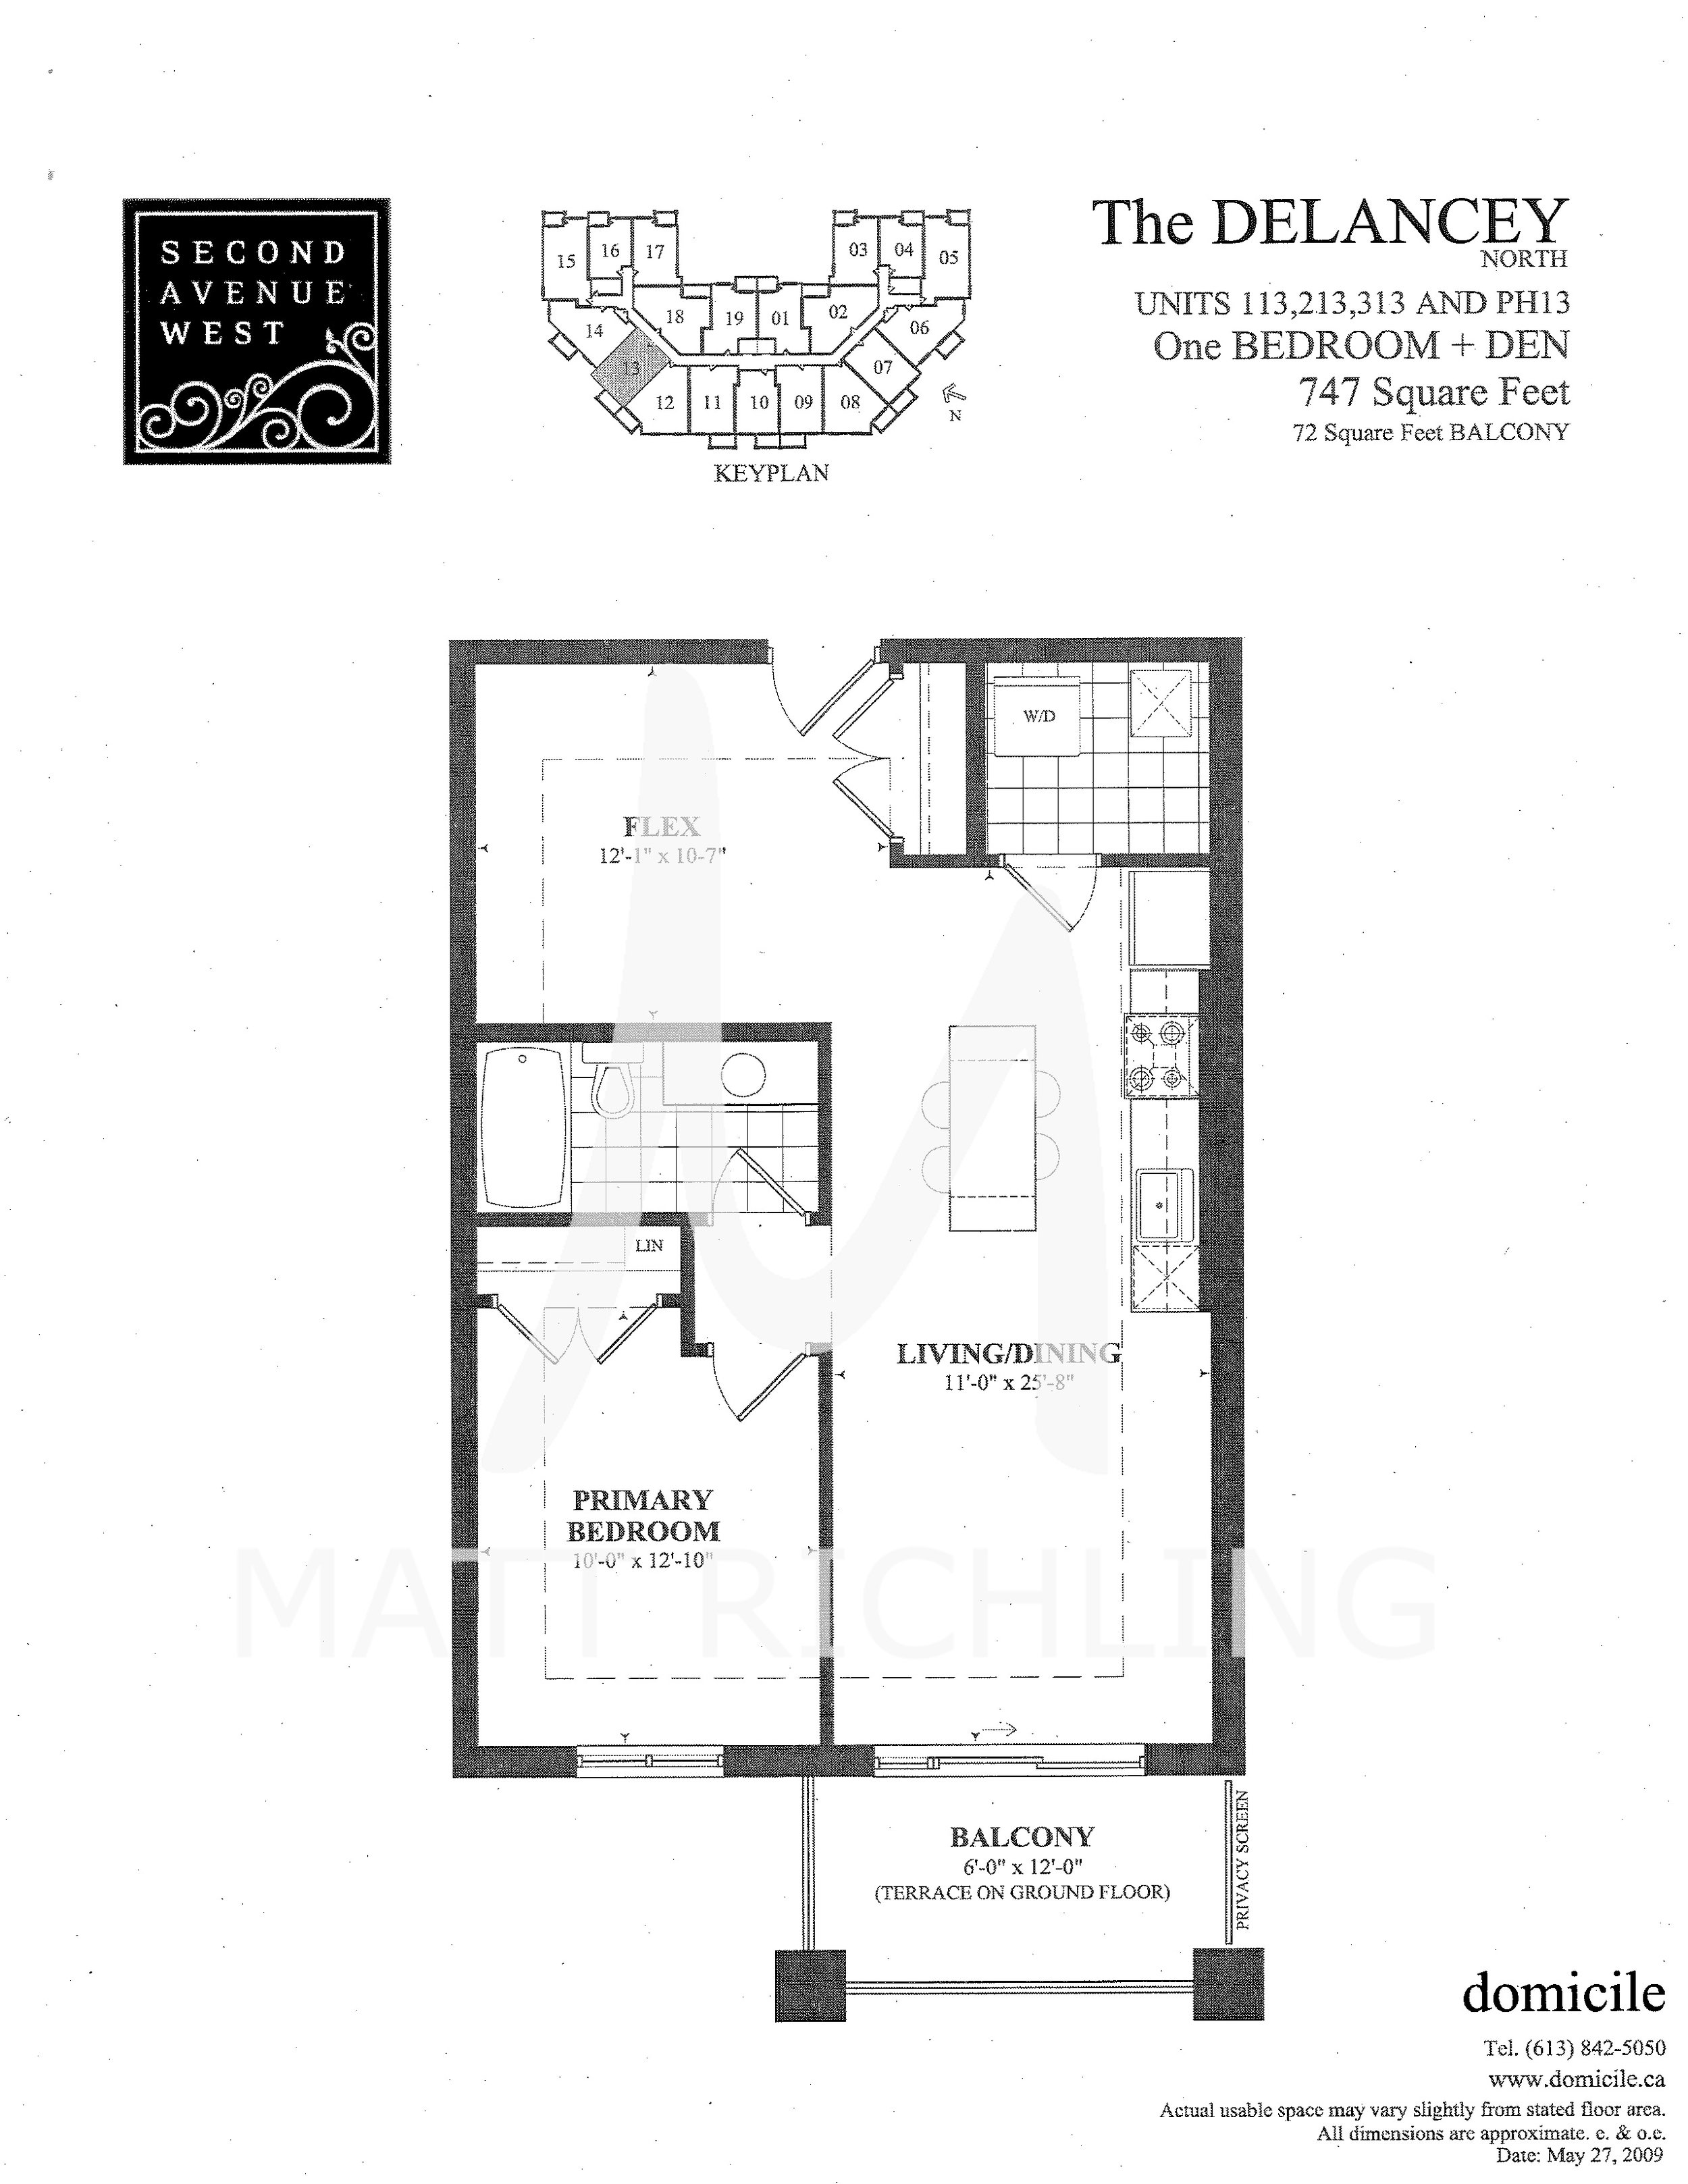 The-Delancey---1-Bed-+-Den---113,213,313,PH13.jpg